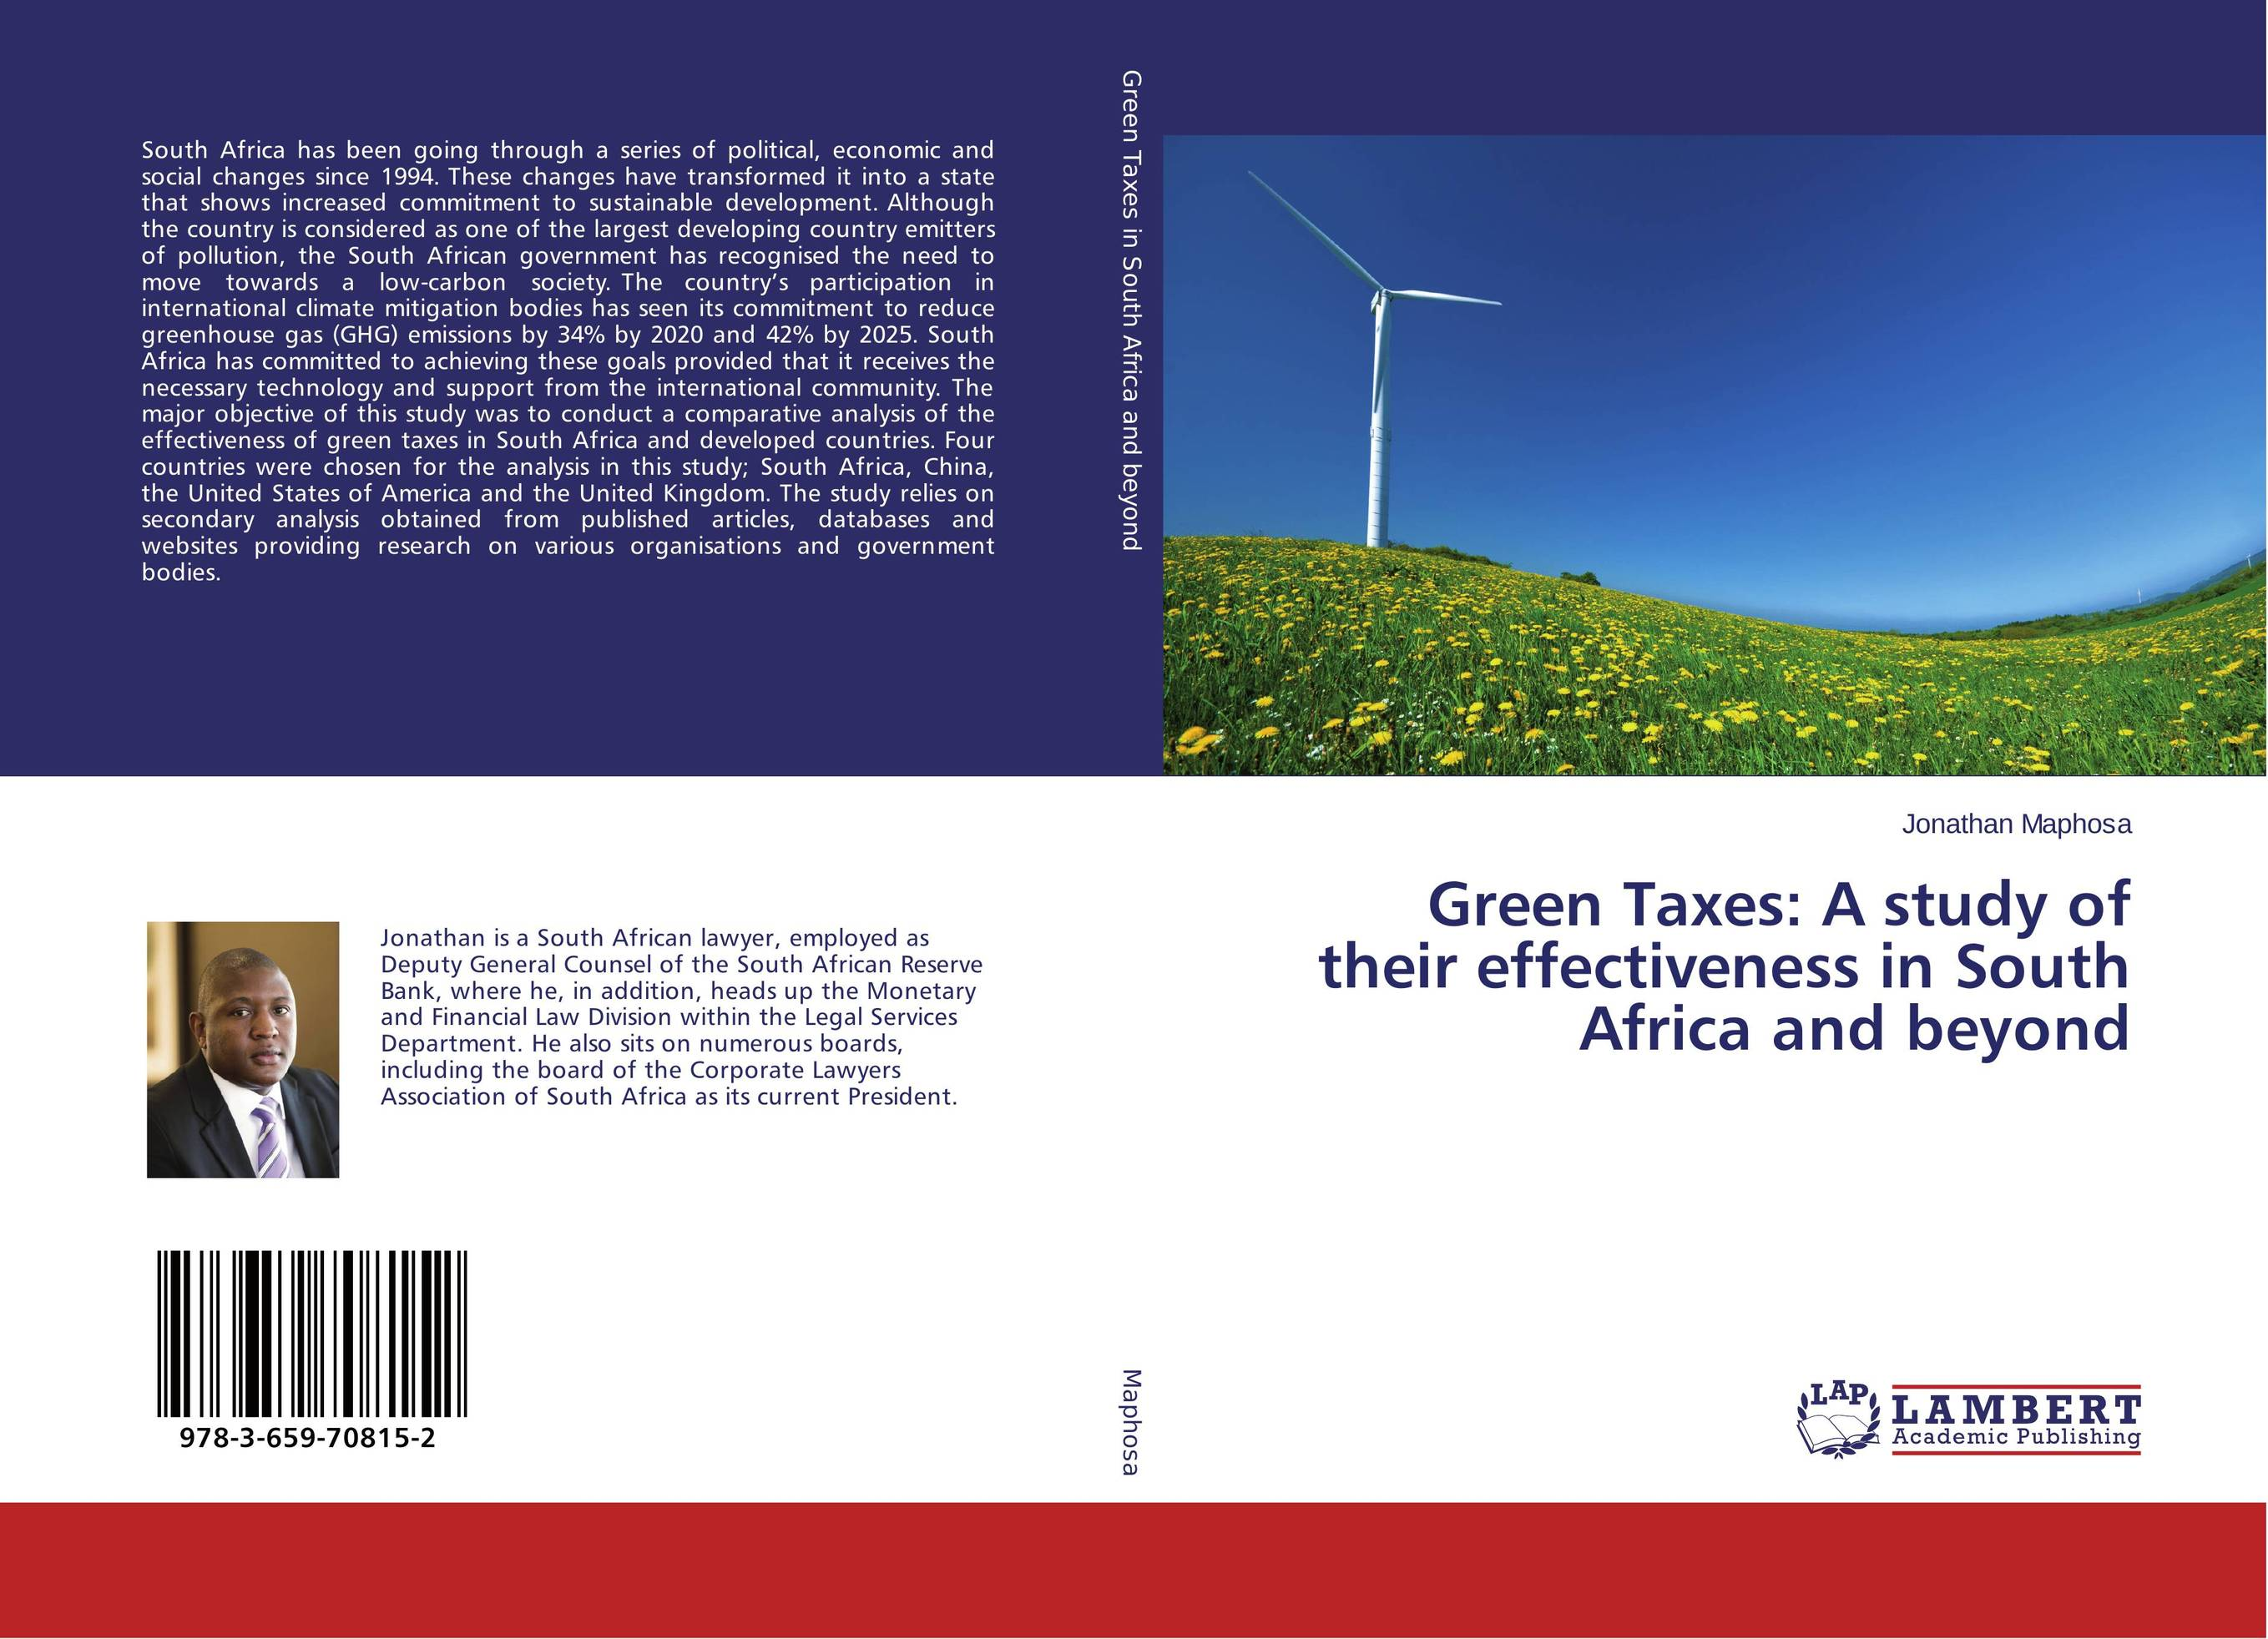 Green Taxes: A study of their effectiveness in South Africa and beyond south africa argentina